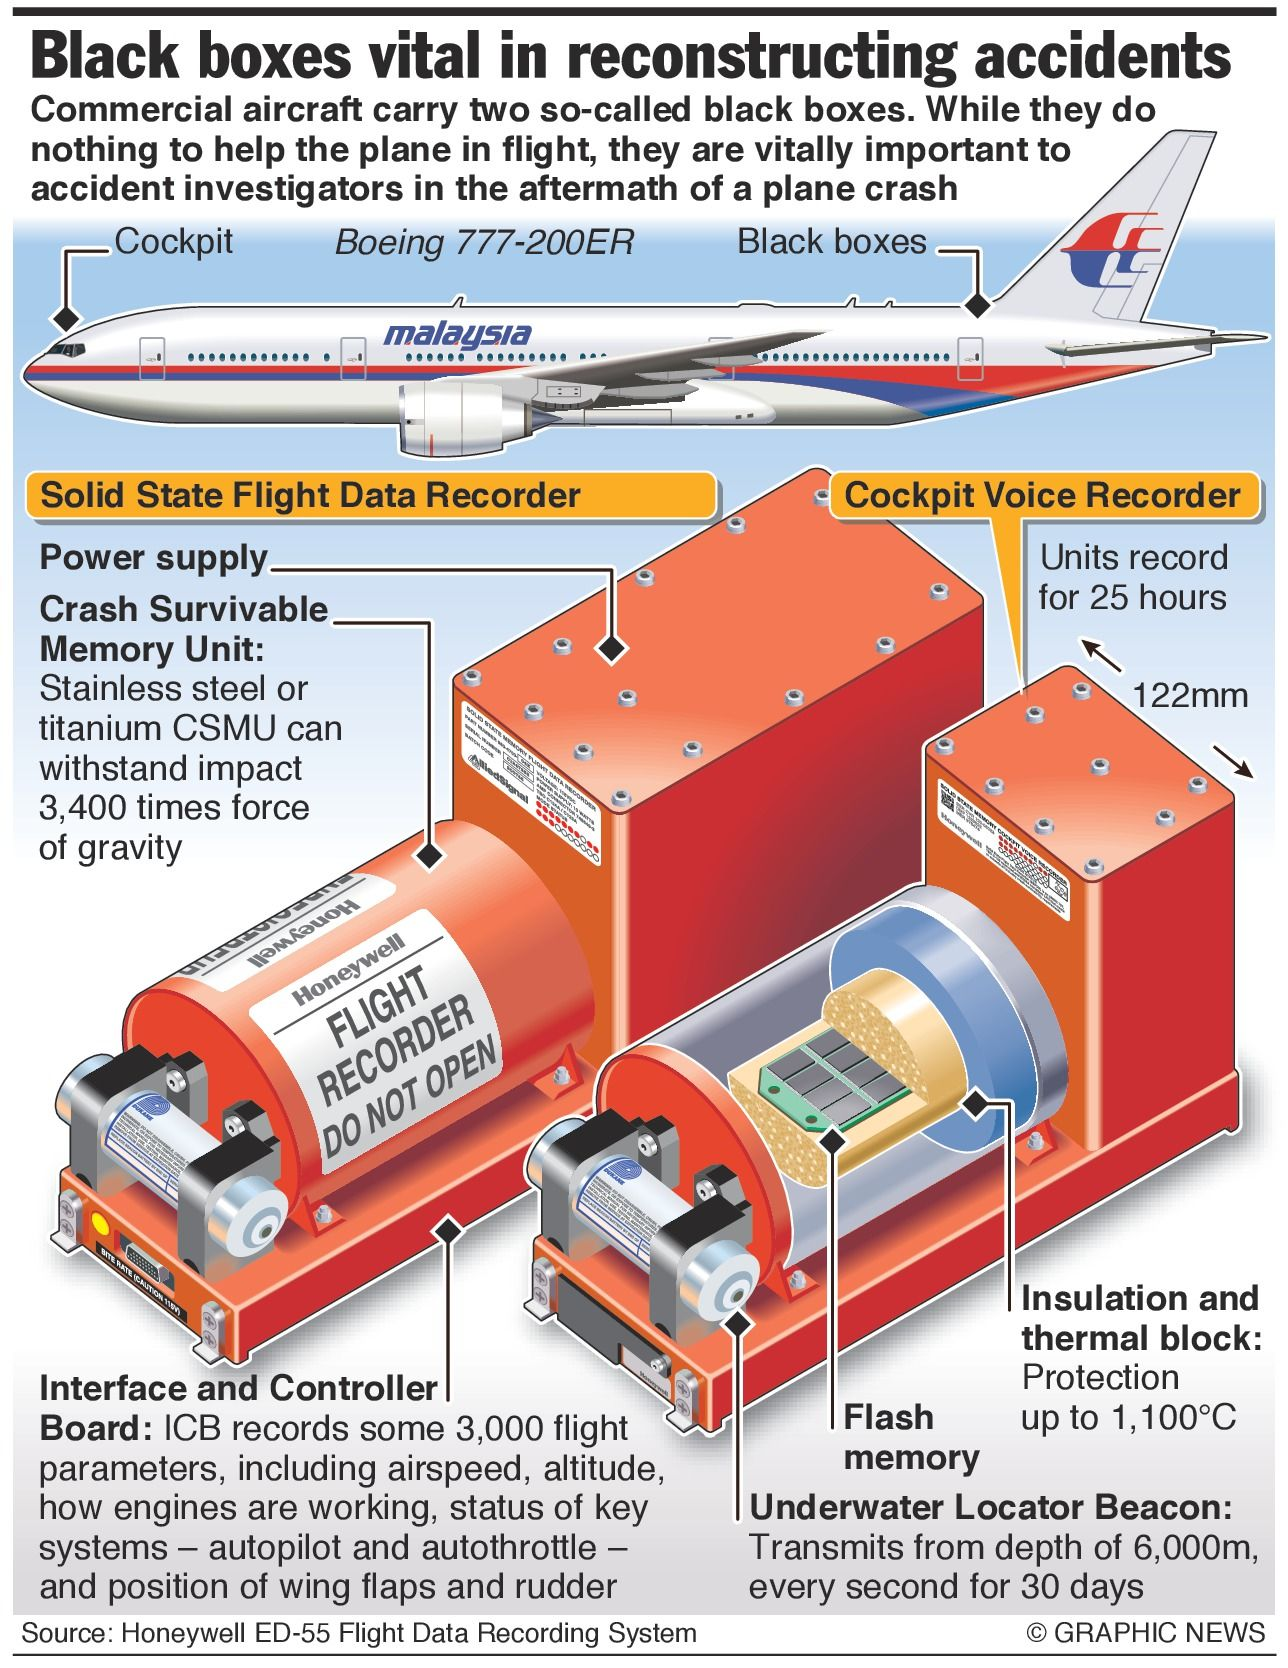 Black box recorders crucial to understanding how airplanes